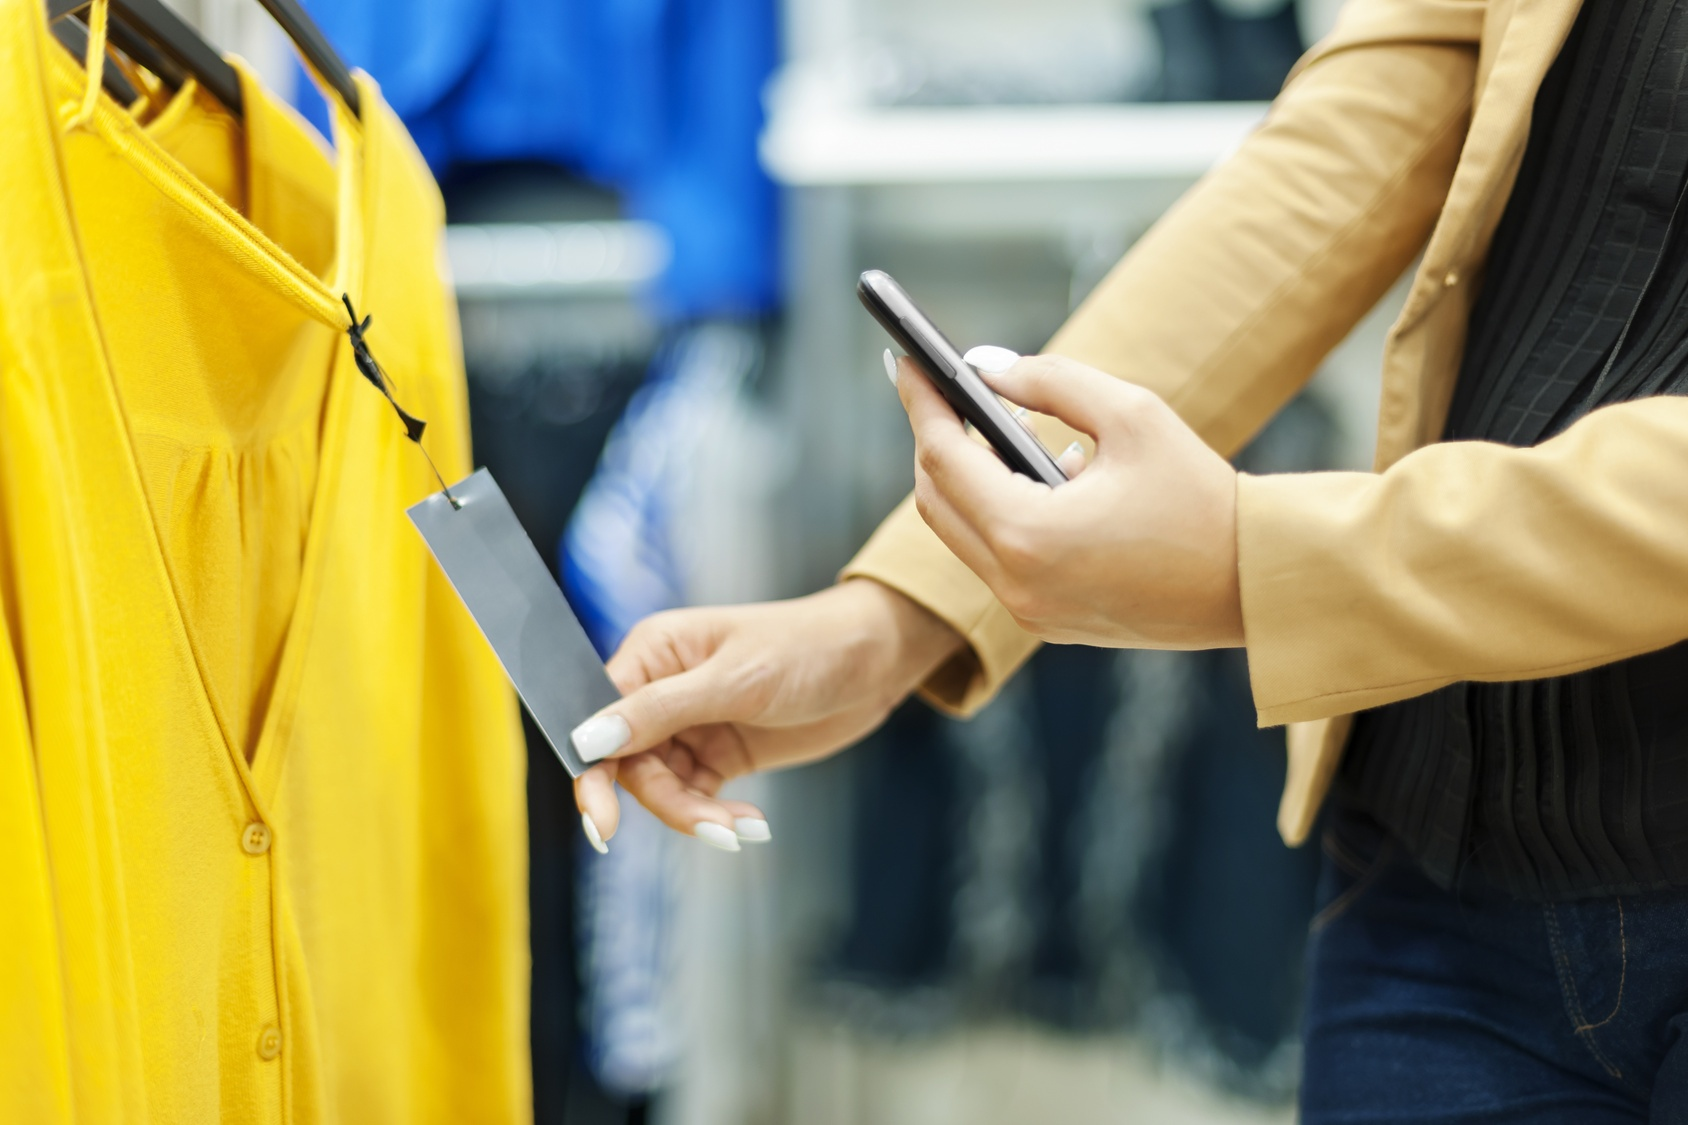 How shoppers use their smartphones in stores